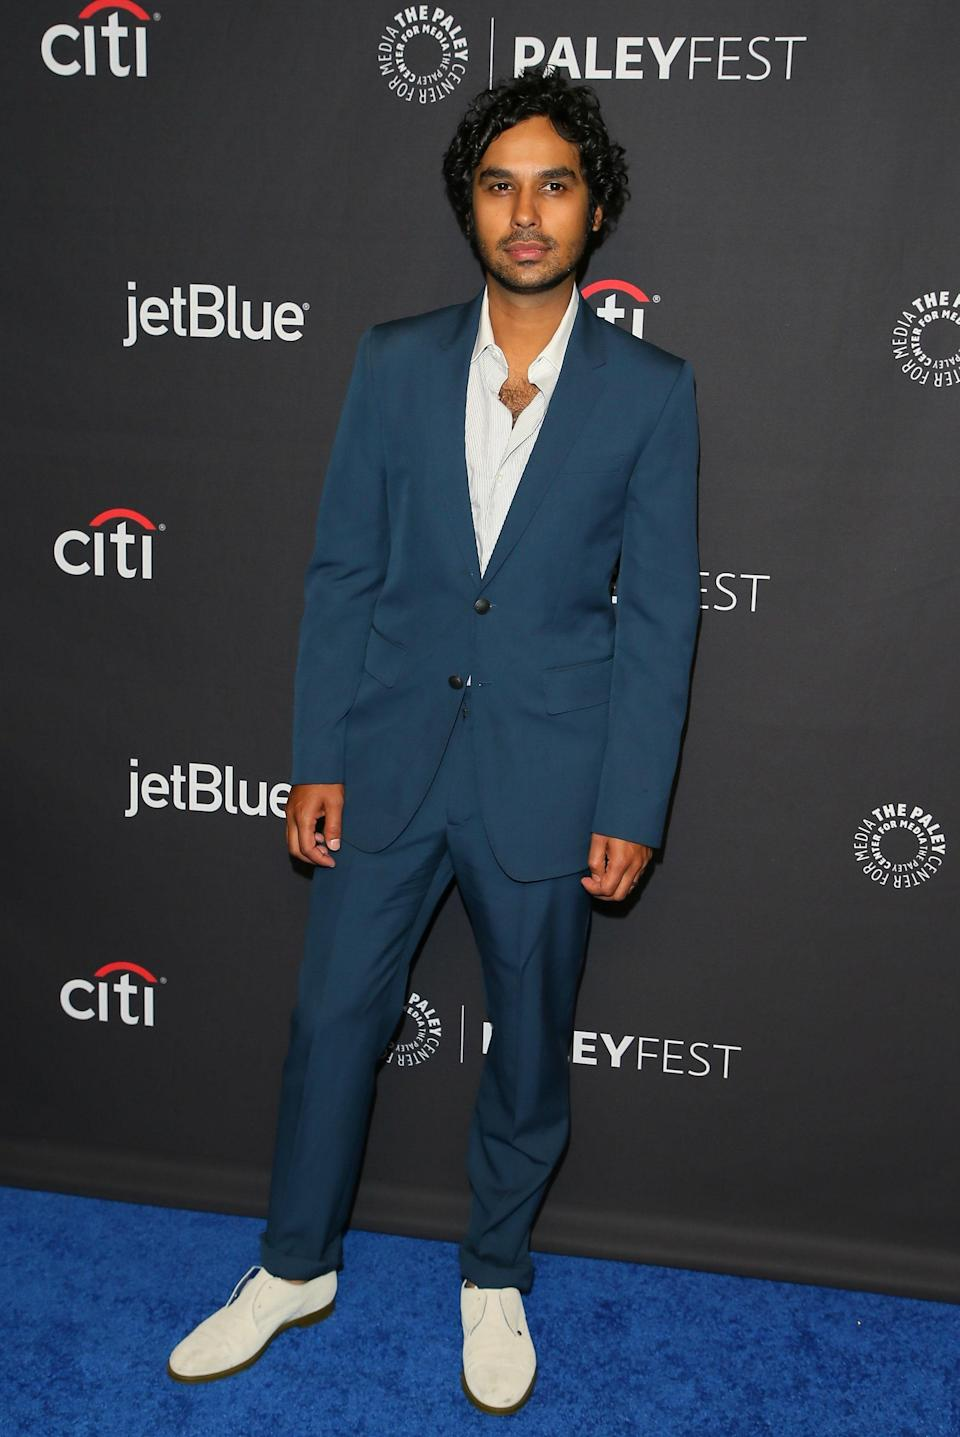 Any <em>Big Bang Theory</em> fan knows Kunal Nayyar as the lovably awkward astrophysicist Rajesh Koothrappali. The London-born Indian actor grew up in New Dehli, where his parents still live. Most recently, he voiced the roll of Guy Diamond in <em>Trolls World Tour.</em> Nayyar holds a master's degree in fine arts.